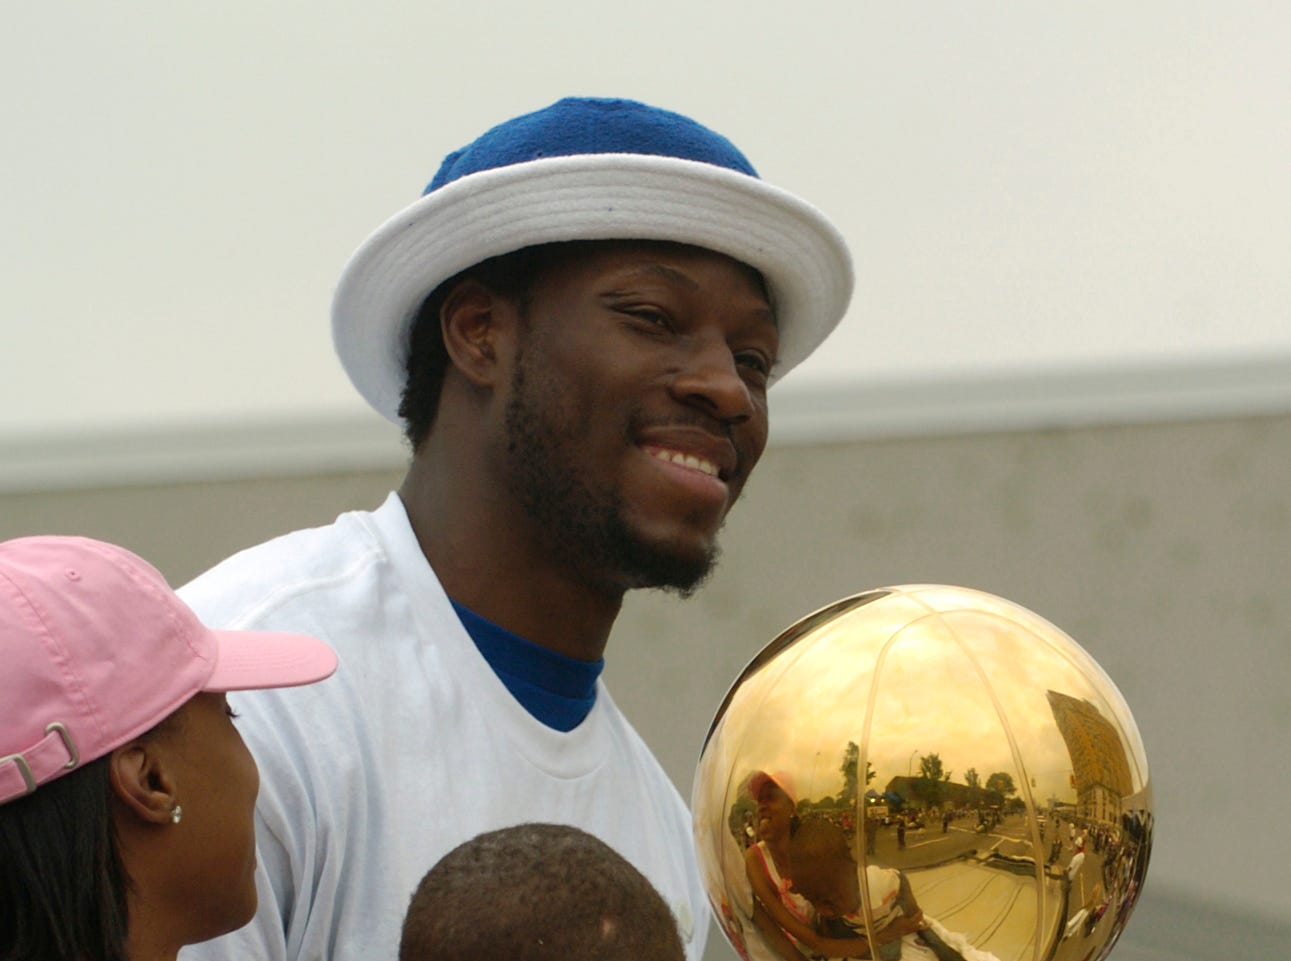 Ben Wallace with his family and the championship trophy in the parade.